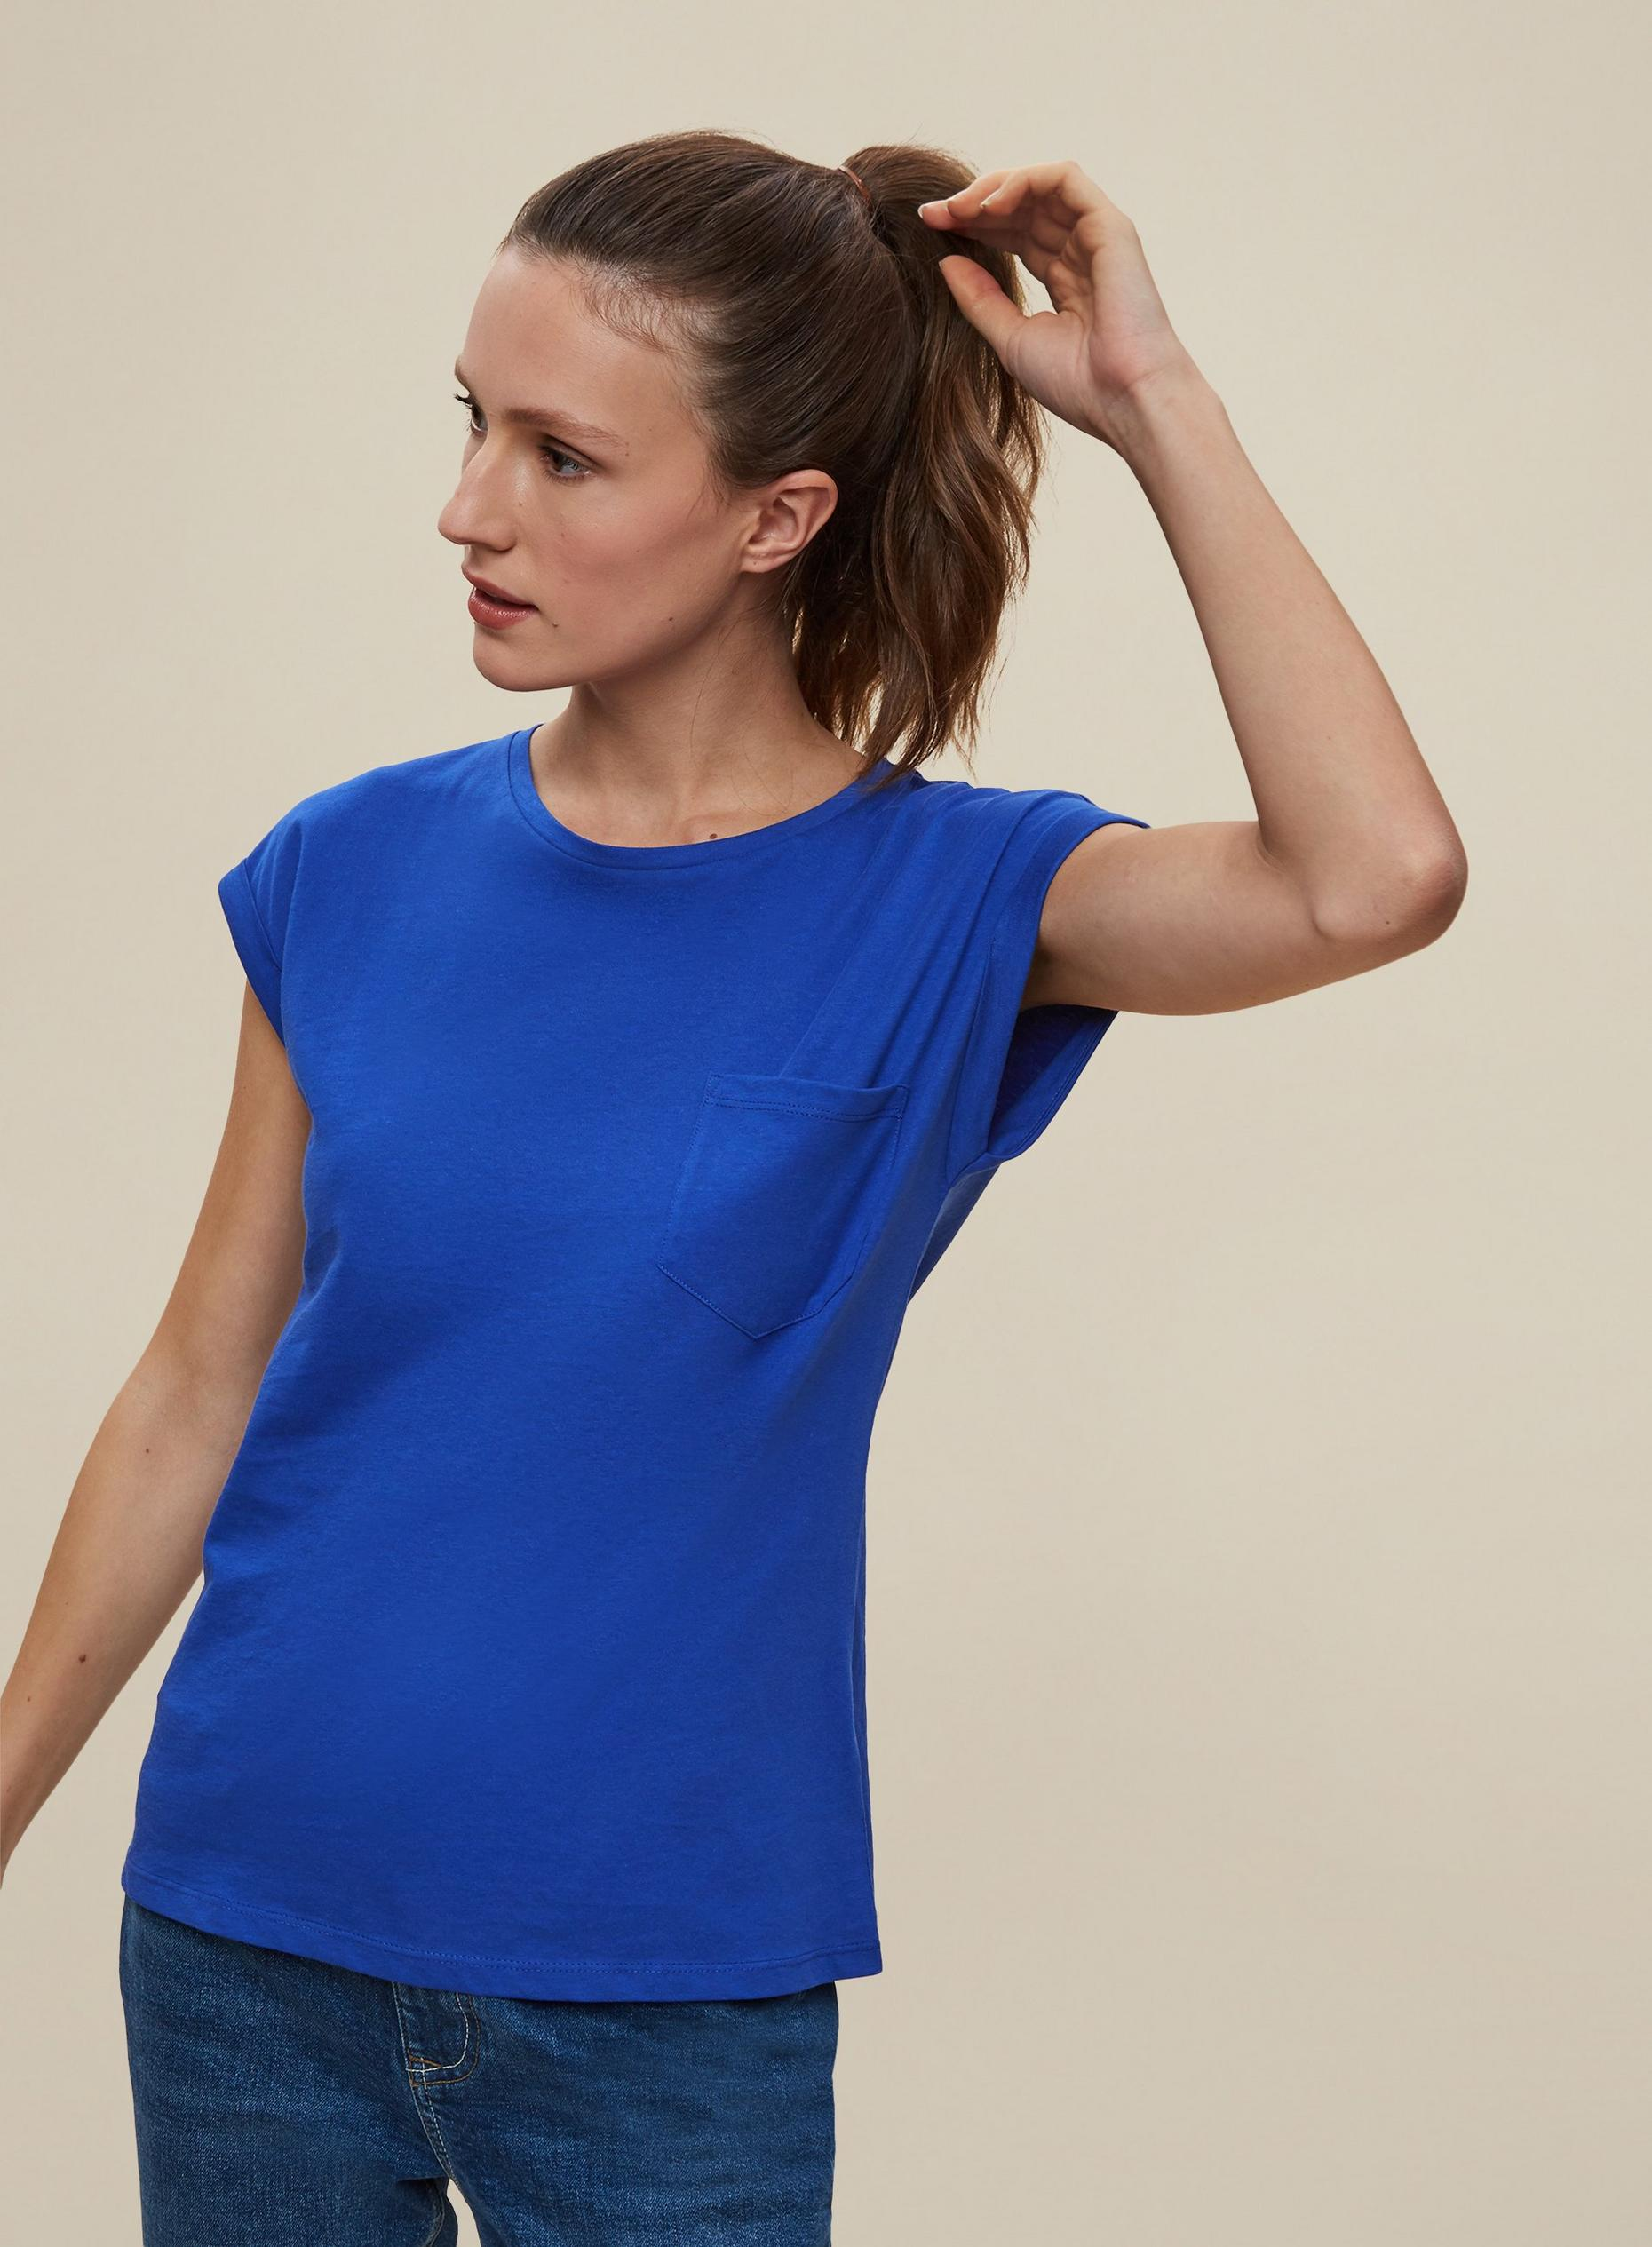 Blue Organic Cotton T-Shirt